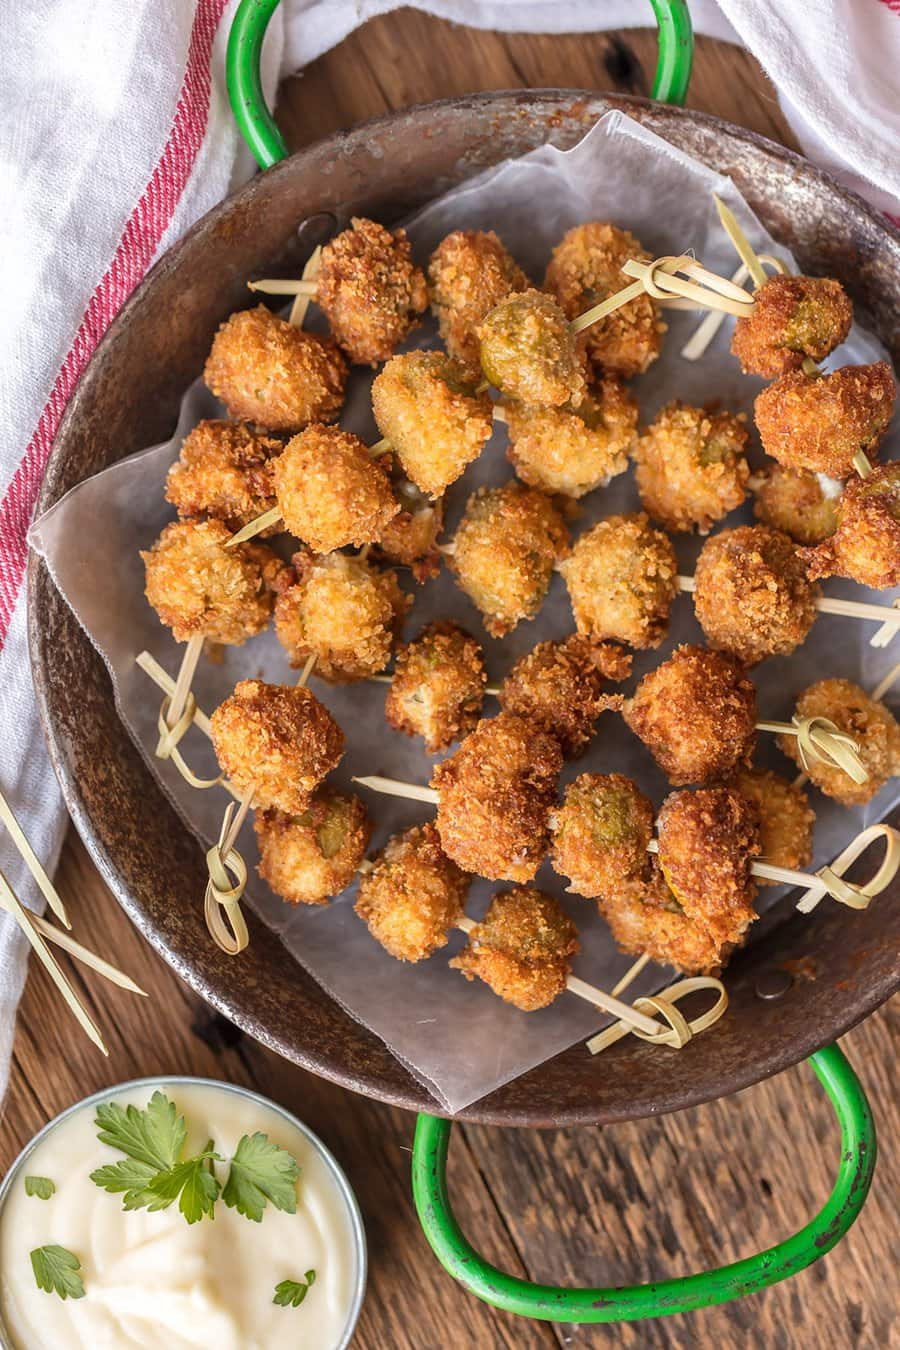 Fried Blue Cheese Stuffed Olives | The Cookie Rookie